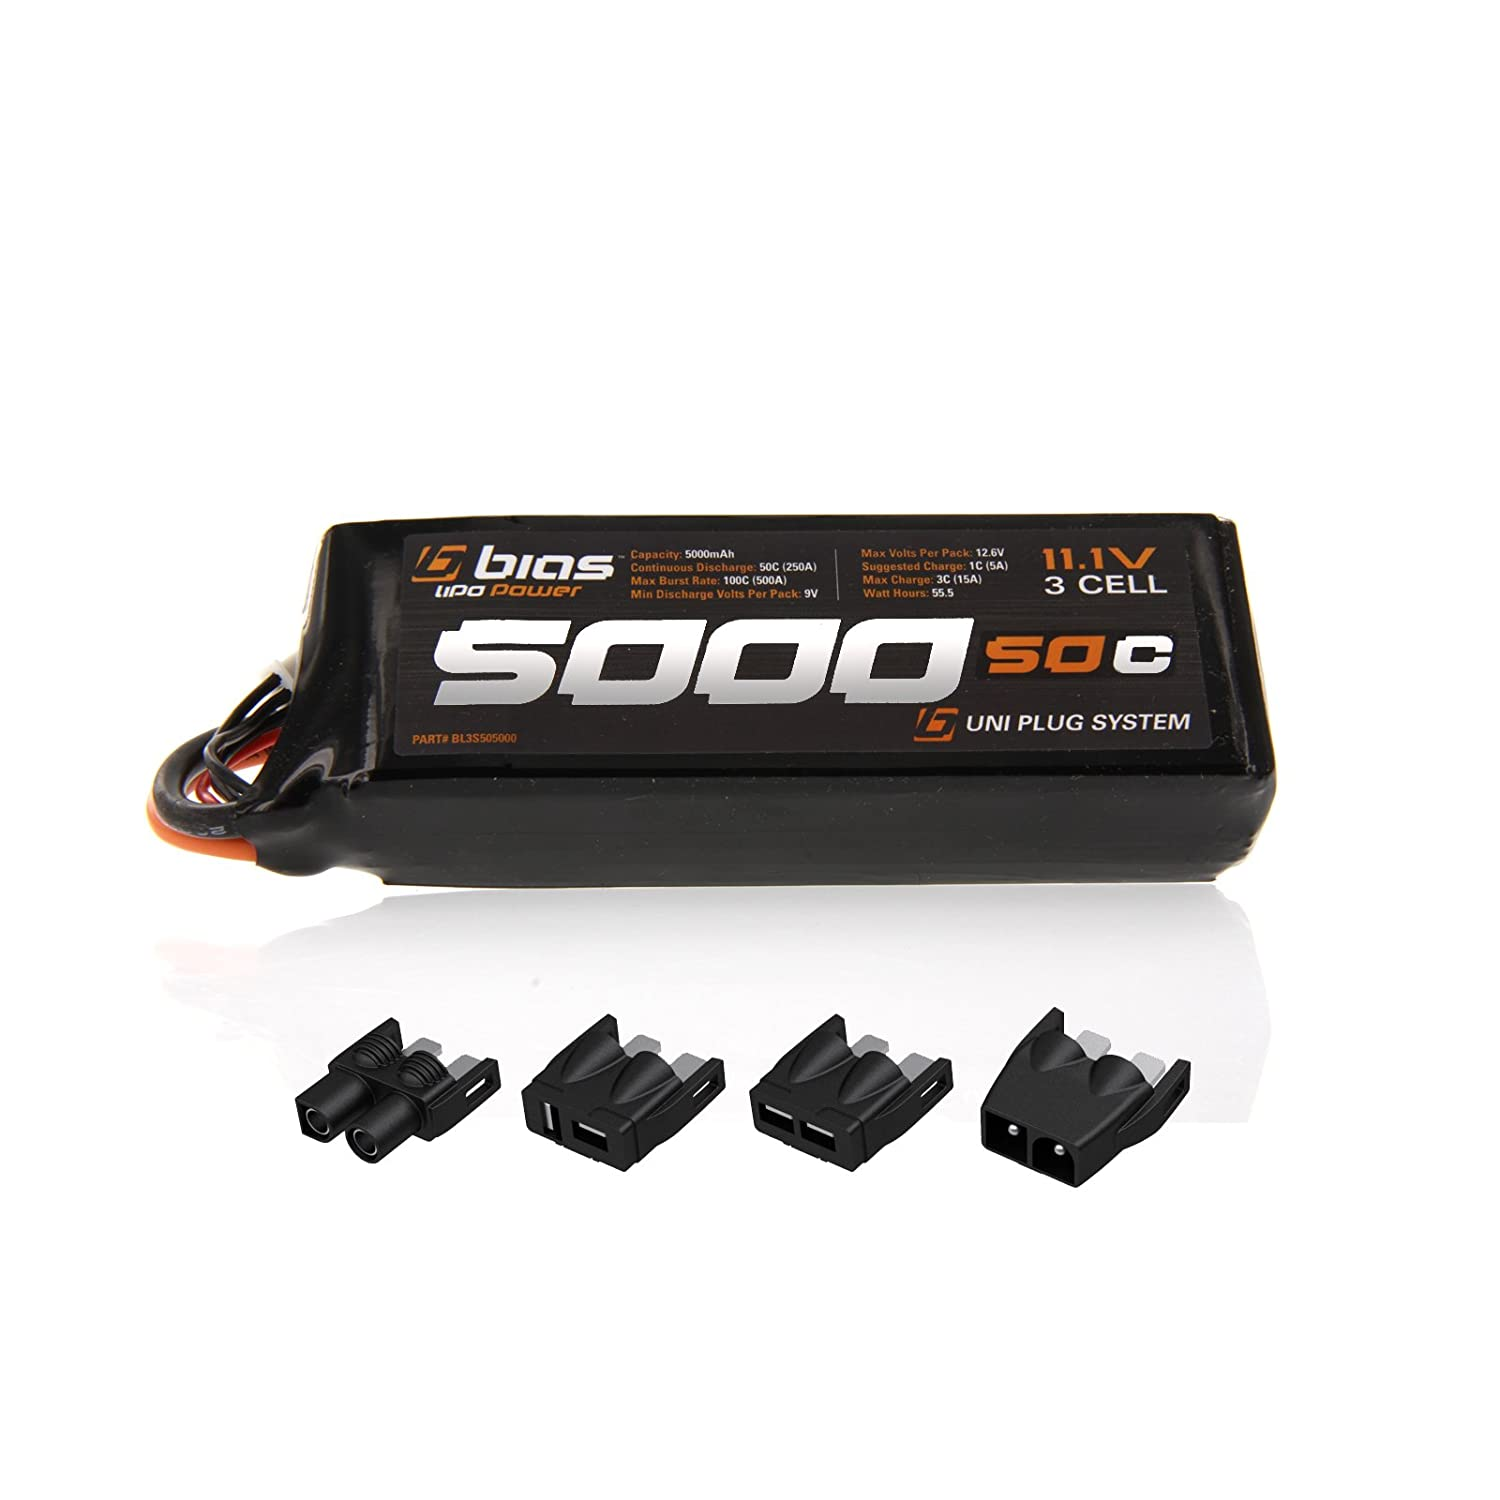 Amazon Bias 50C 3S 5000mAh 11 1V LiPo Battery UNI Plug EC3 Deans Traxxas Tamiya for RC Car Truck Buggy Boat Heli and Drone Toys & Games